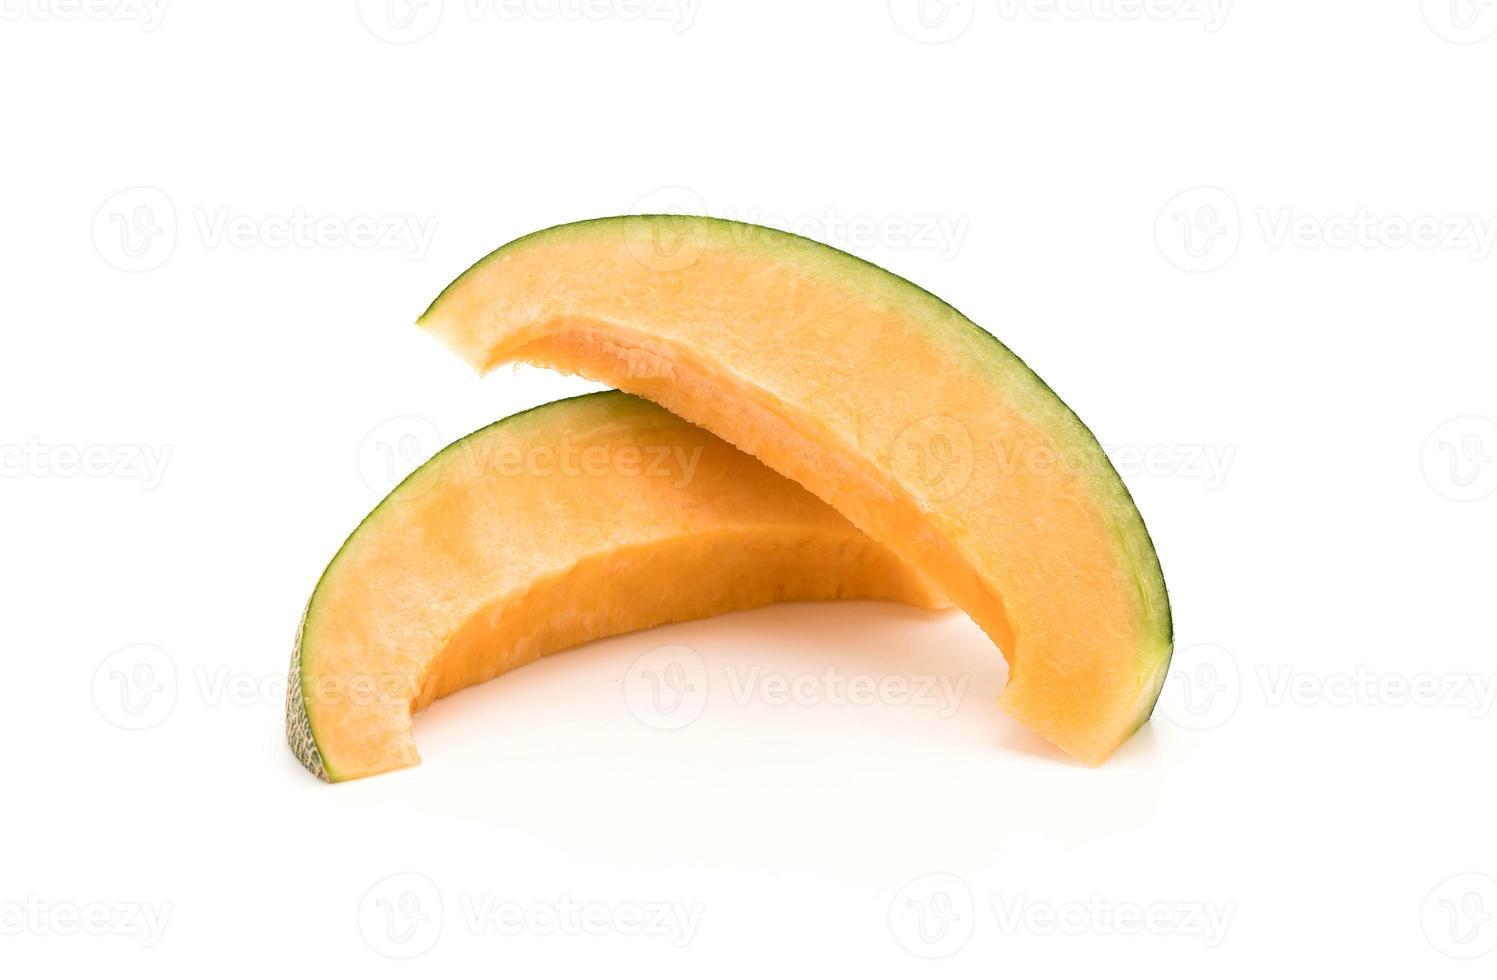 Cantaloupe melon on white background photo